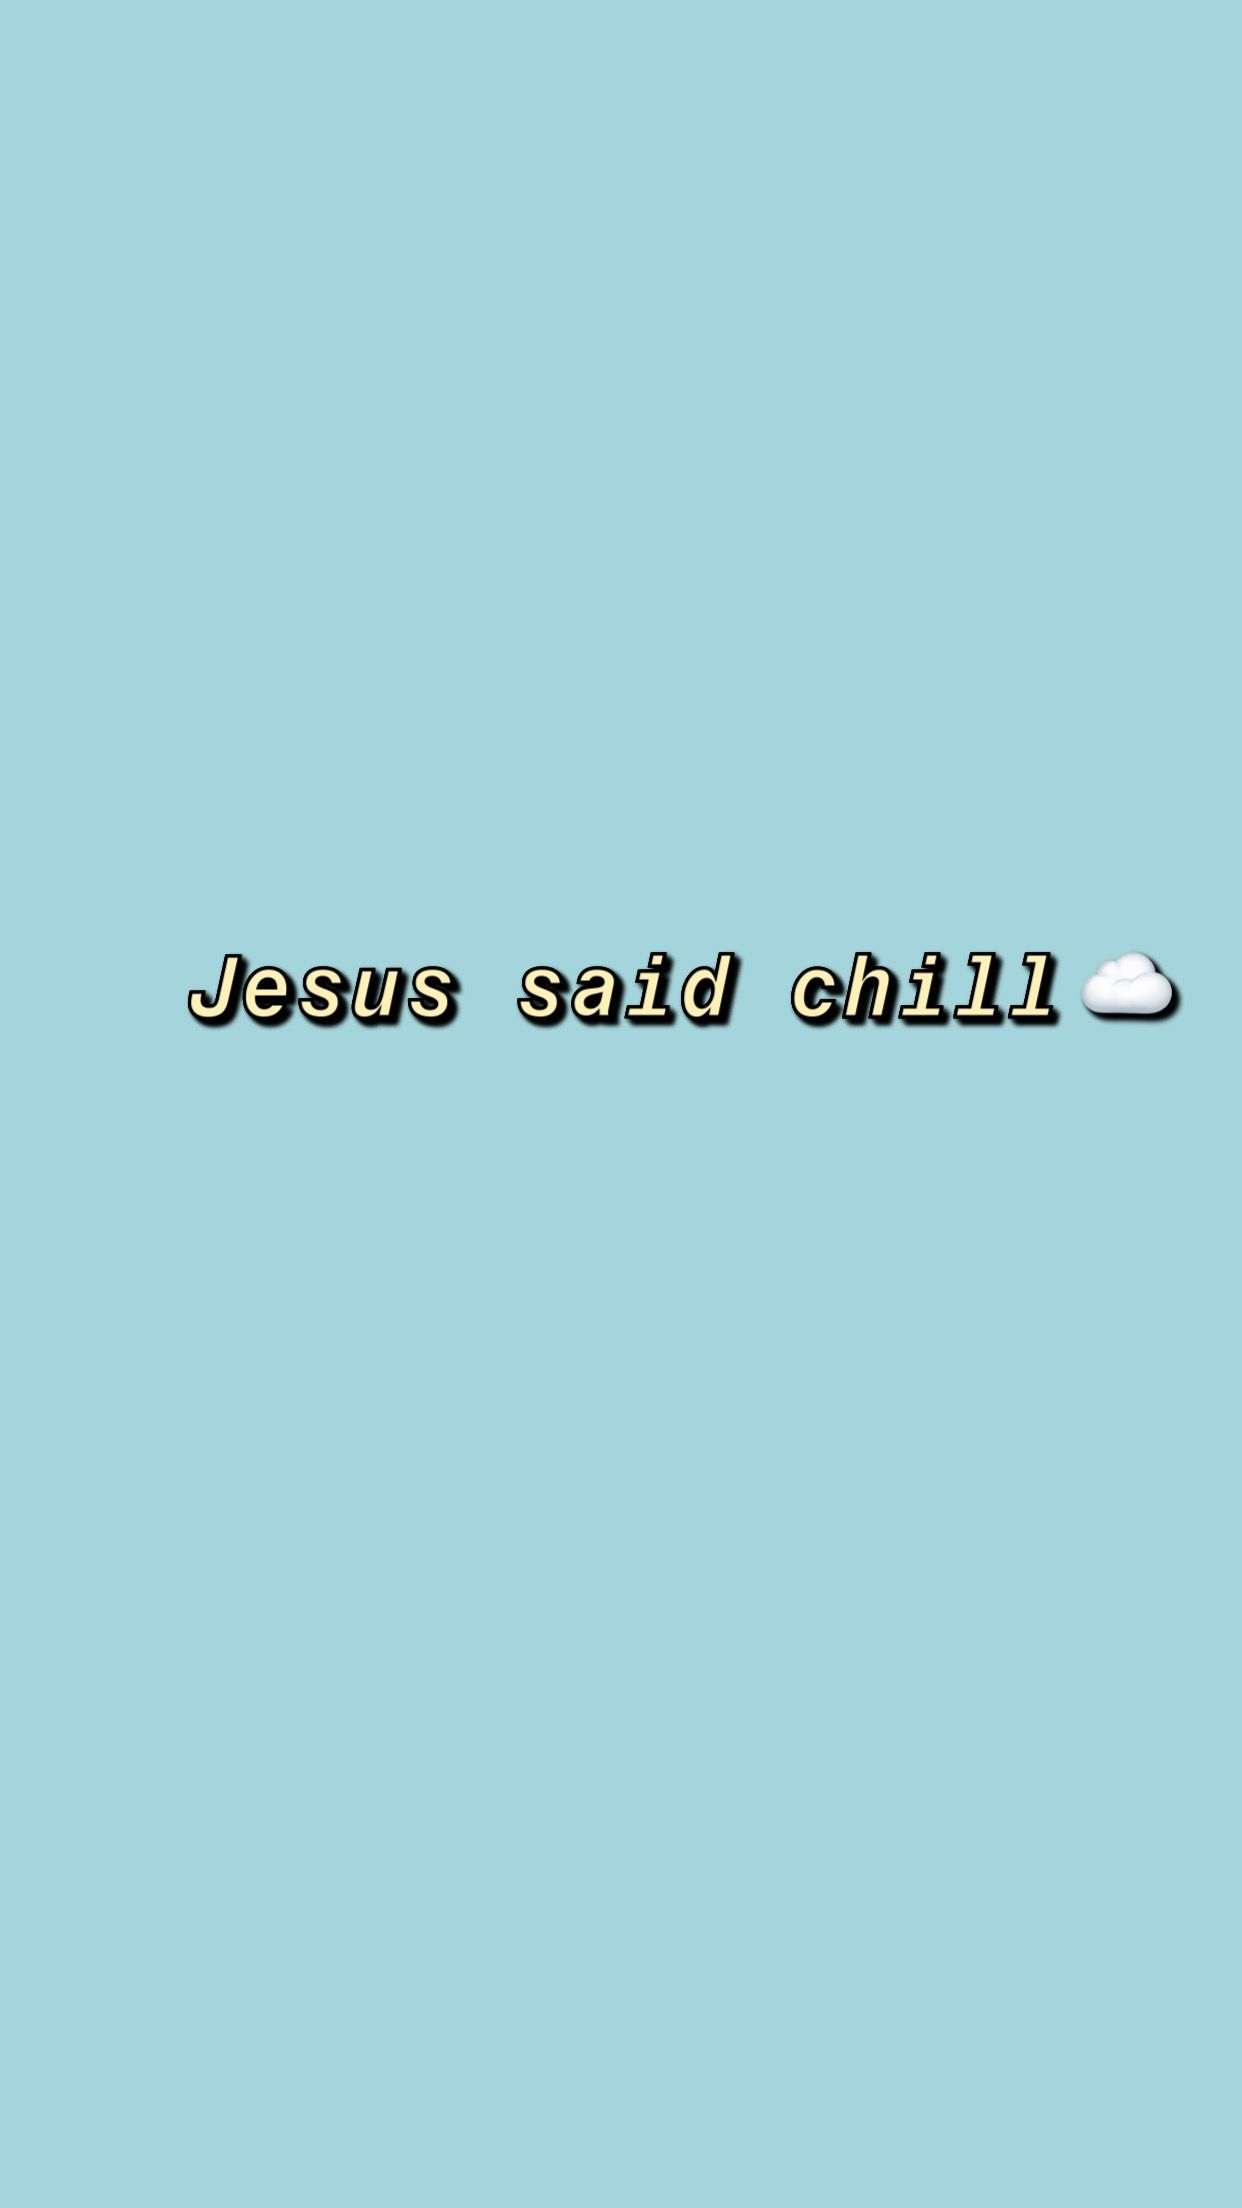 Pin By Hector Ocampo On Blue Wallpaper Iphone Blue Wallpaper Iphone Aesthetic Wallpapers New Wallpaper Aesthetic jesus said chill wallpaper